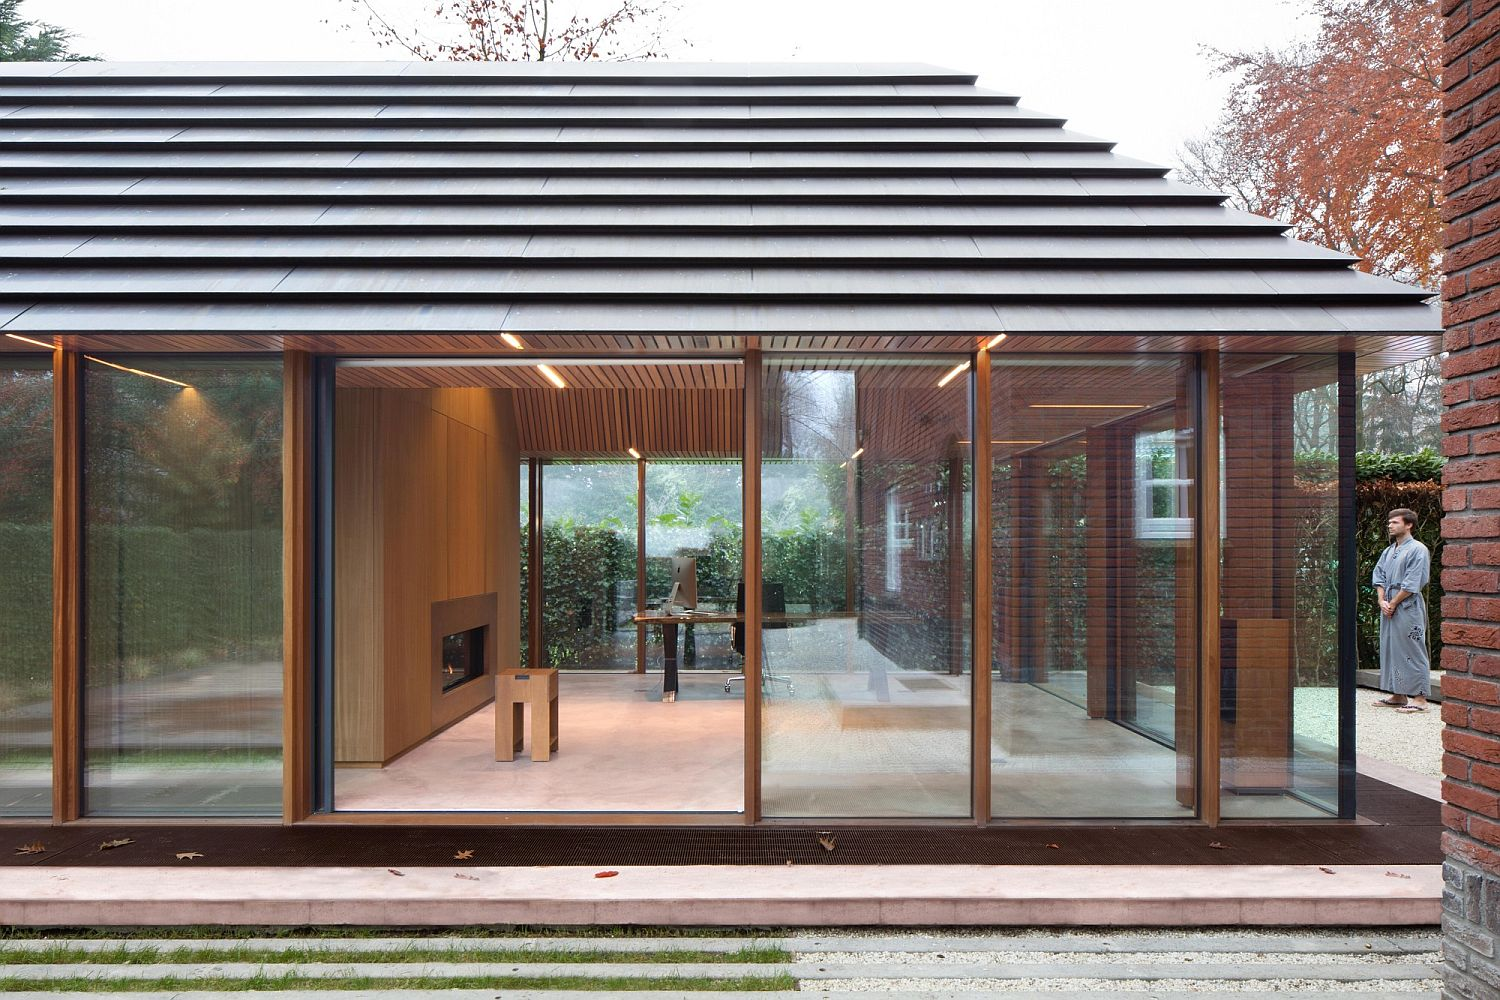 Fabulous copper roof of the office pavilion adds character to the setting